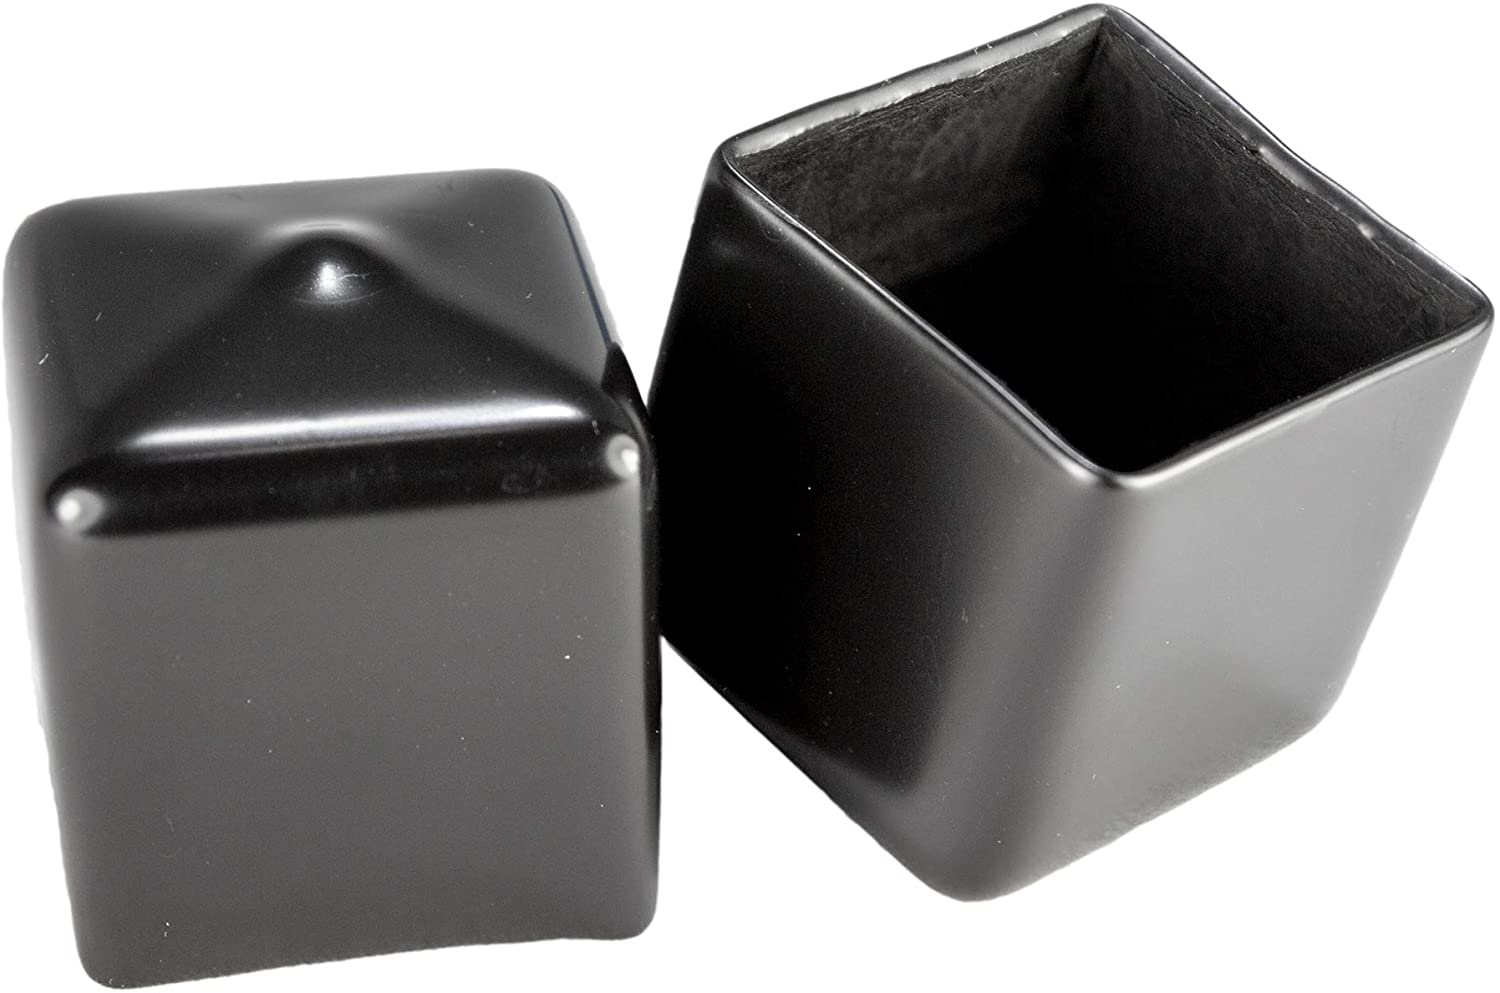 Prescott Plastics 1 Inch Square Black Vinyl End Cap, Flexible Pipe Post Rubber Cover ((C) Pack of 50 Caps)